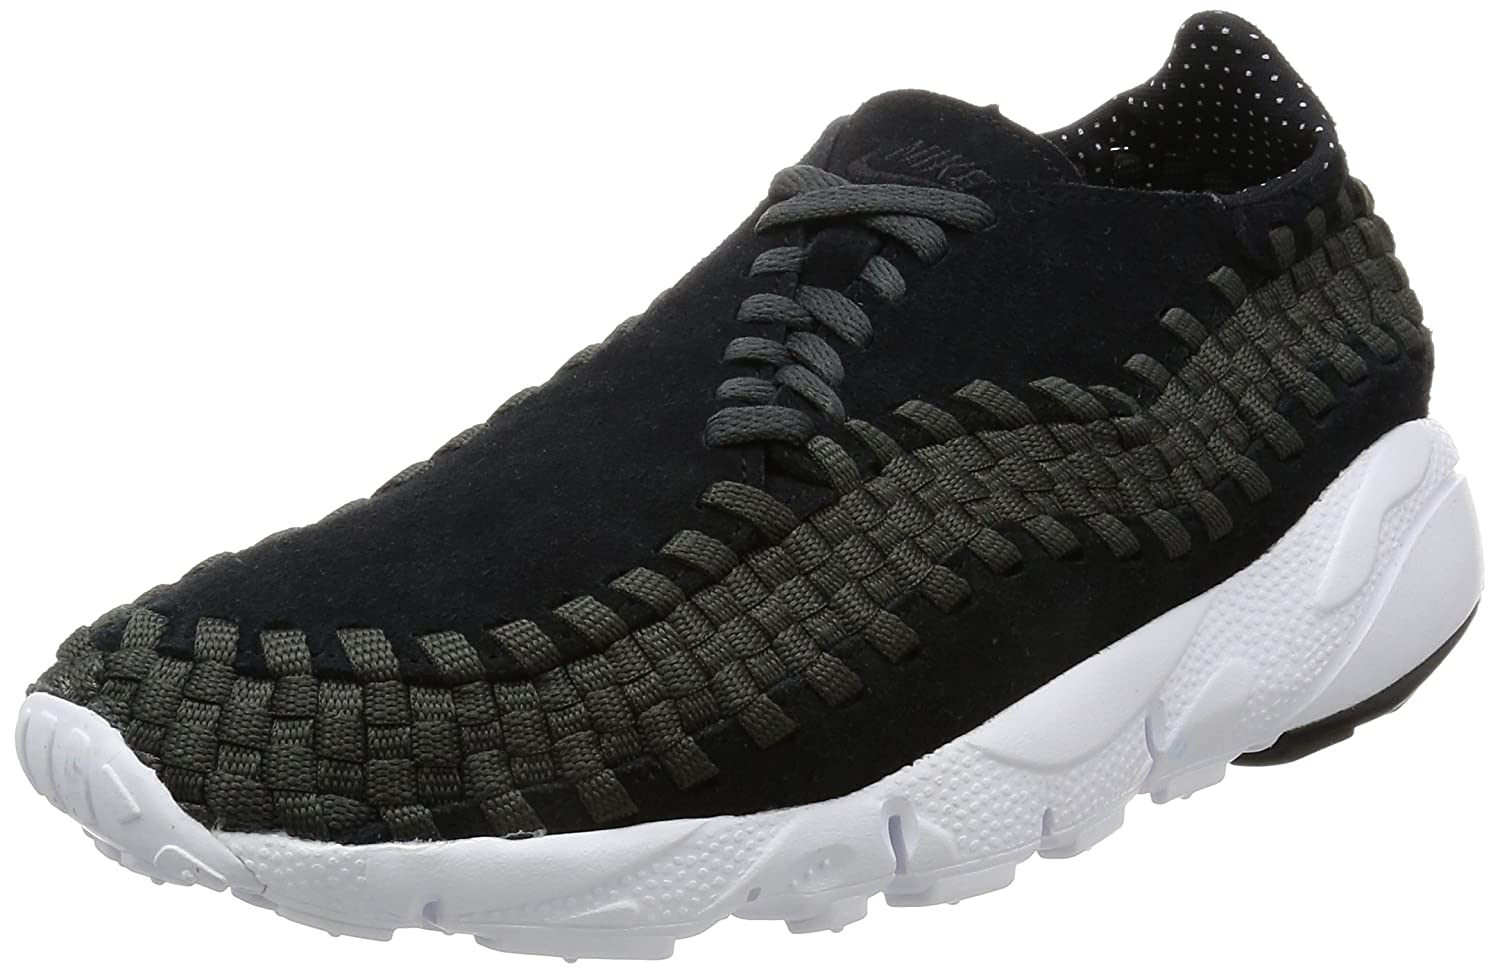 NIKE Men's Air Footscape Woven NM Casual Shoe B01N330CPC 12 D(M) US|Black/Black/Anthracite/White